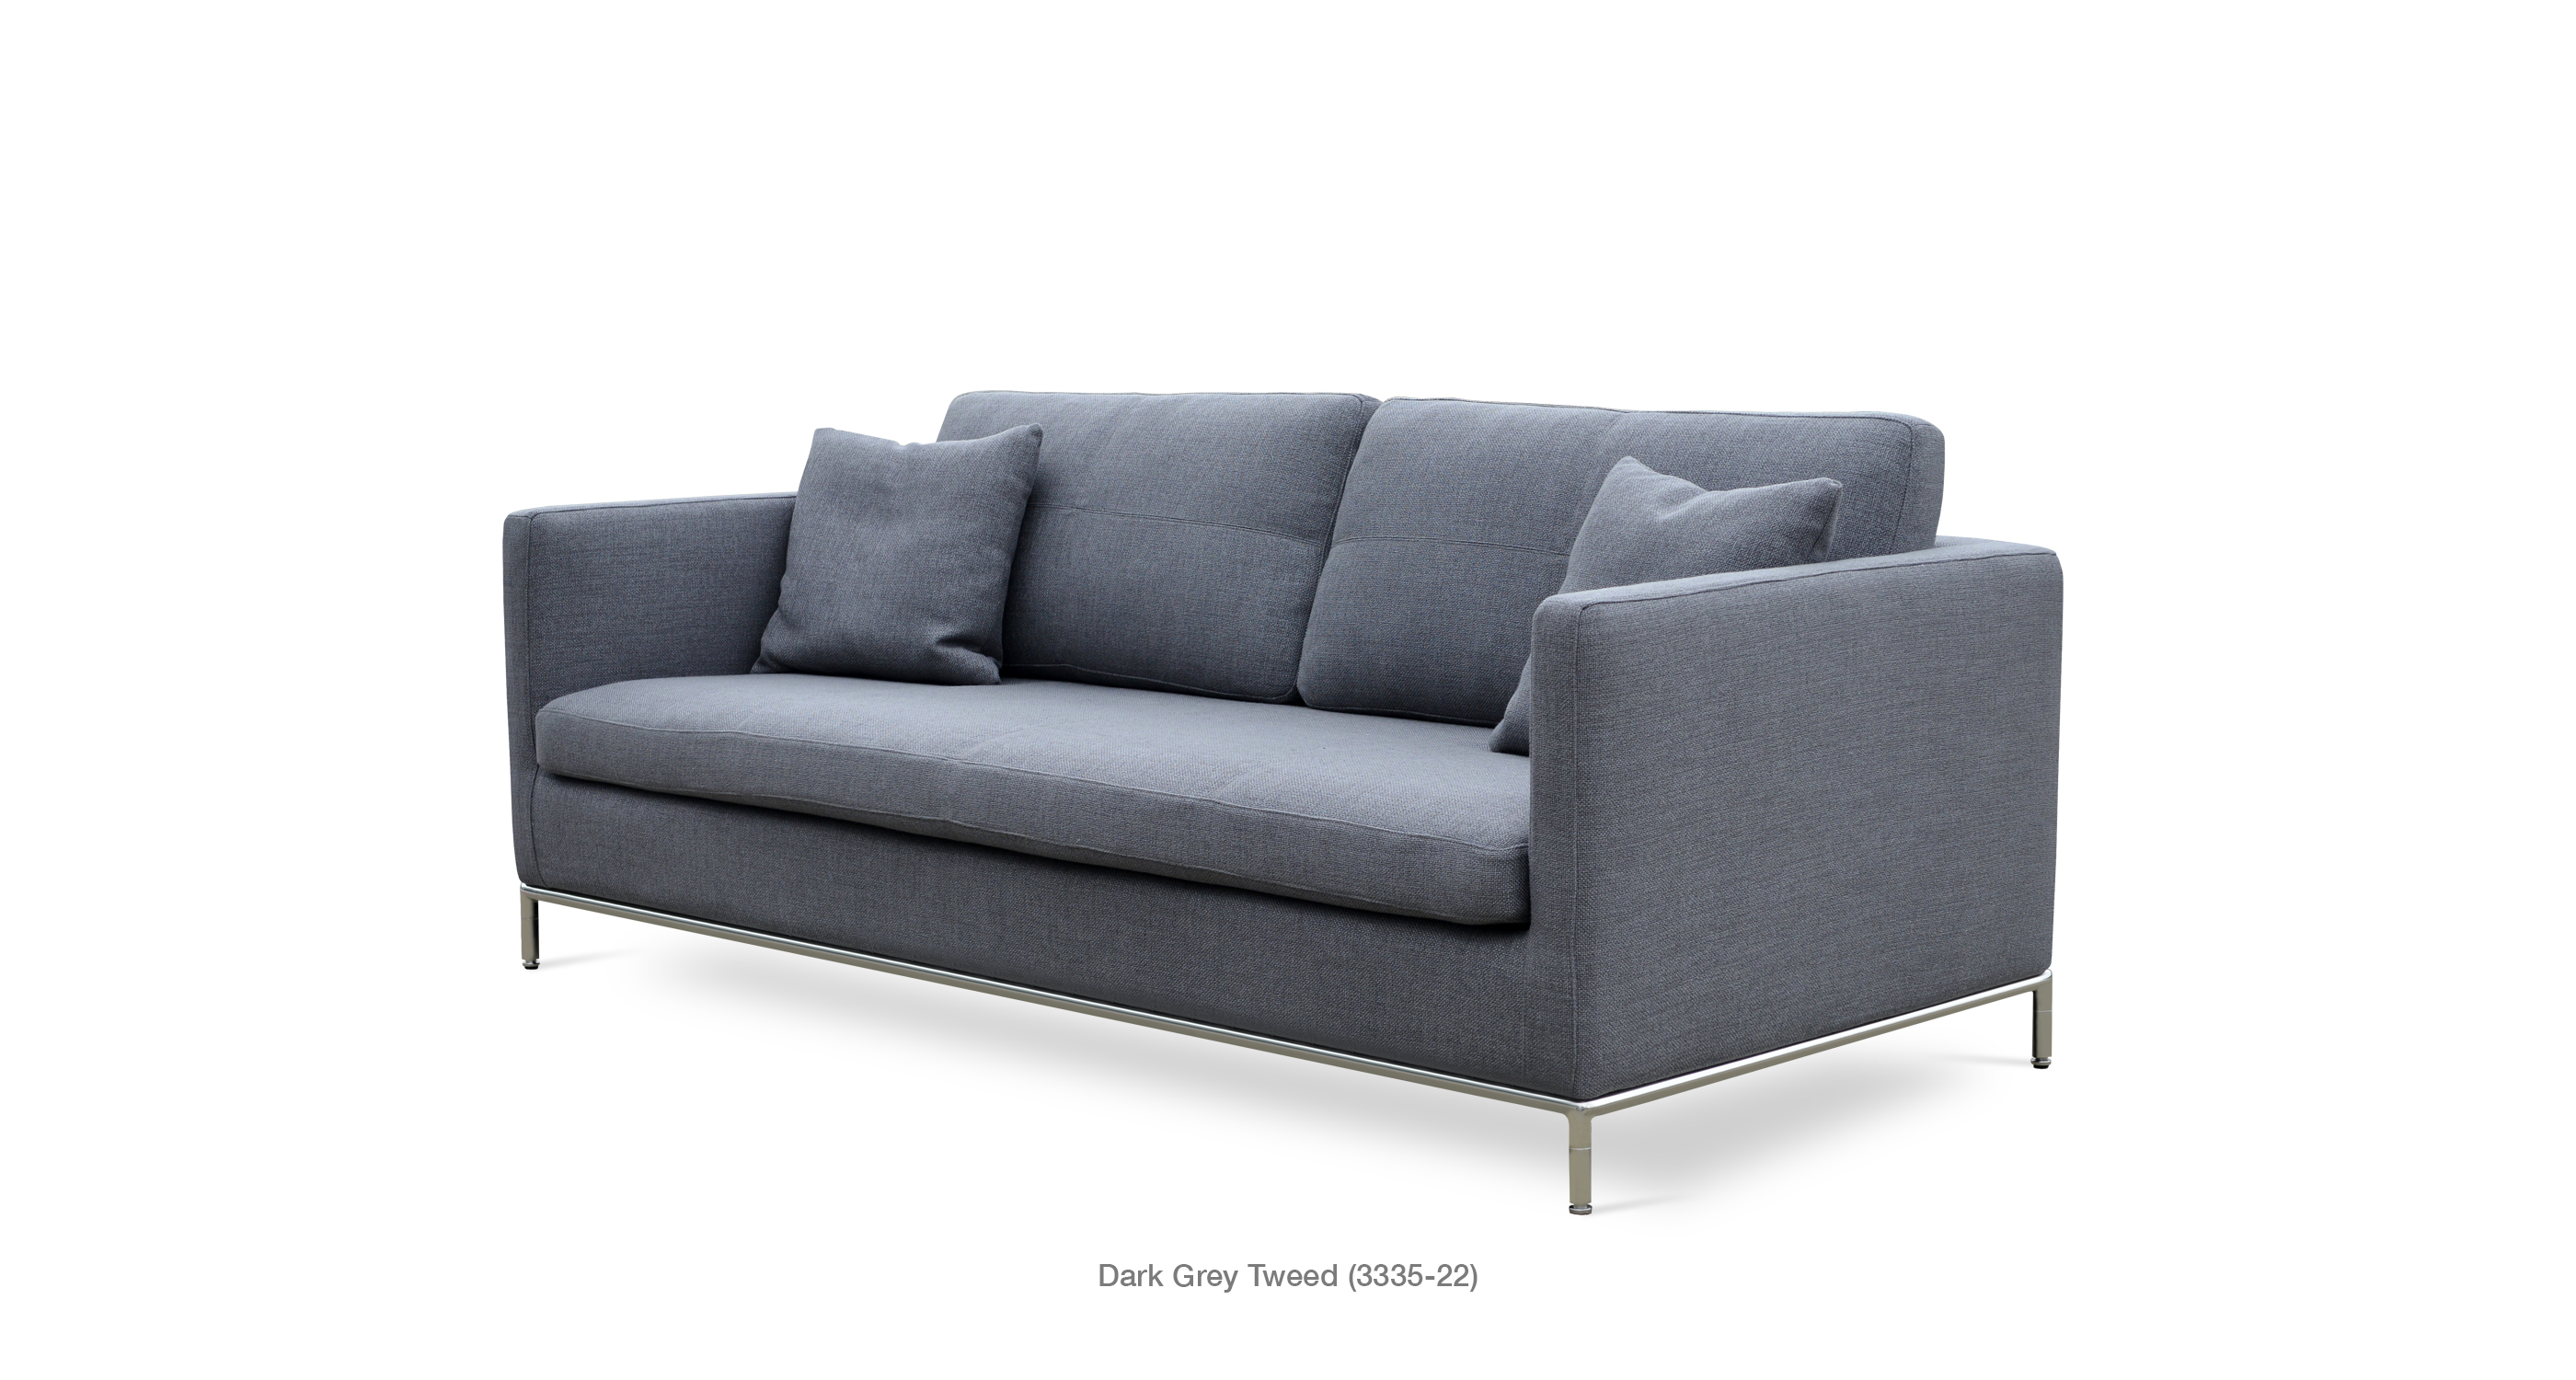 Istanbul sofa modern contemporary sofas sohoconcept for Grey tweed couch